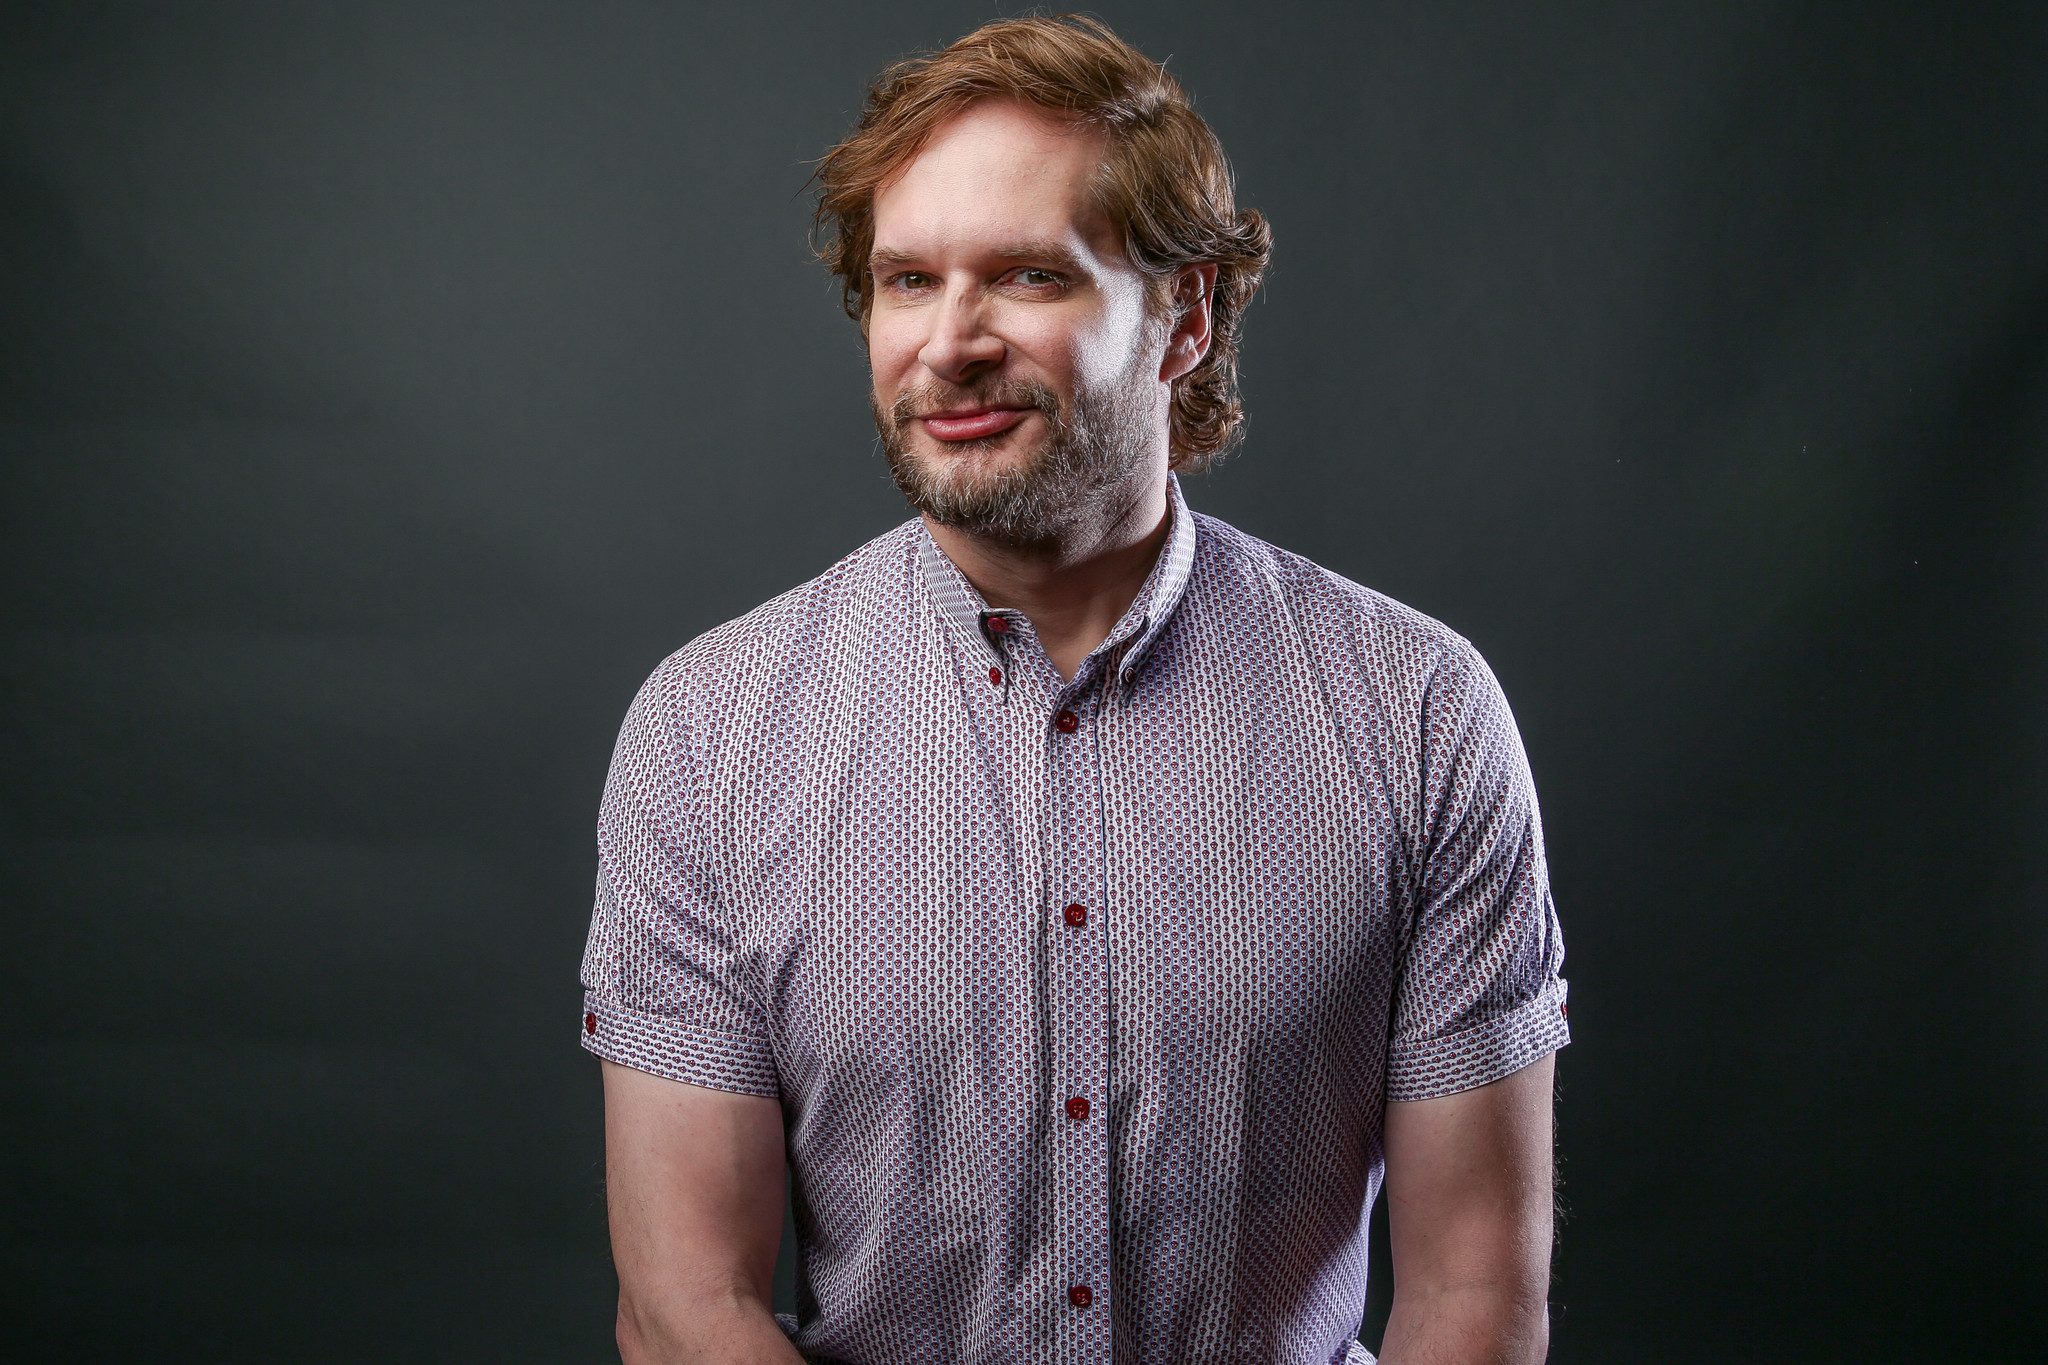 Bryan Fuller, the prolific writer-producer, will be honored at this year's Outfest. (Rich Fury / Invision / Associated Press)